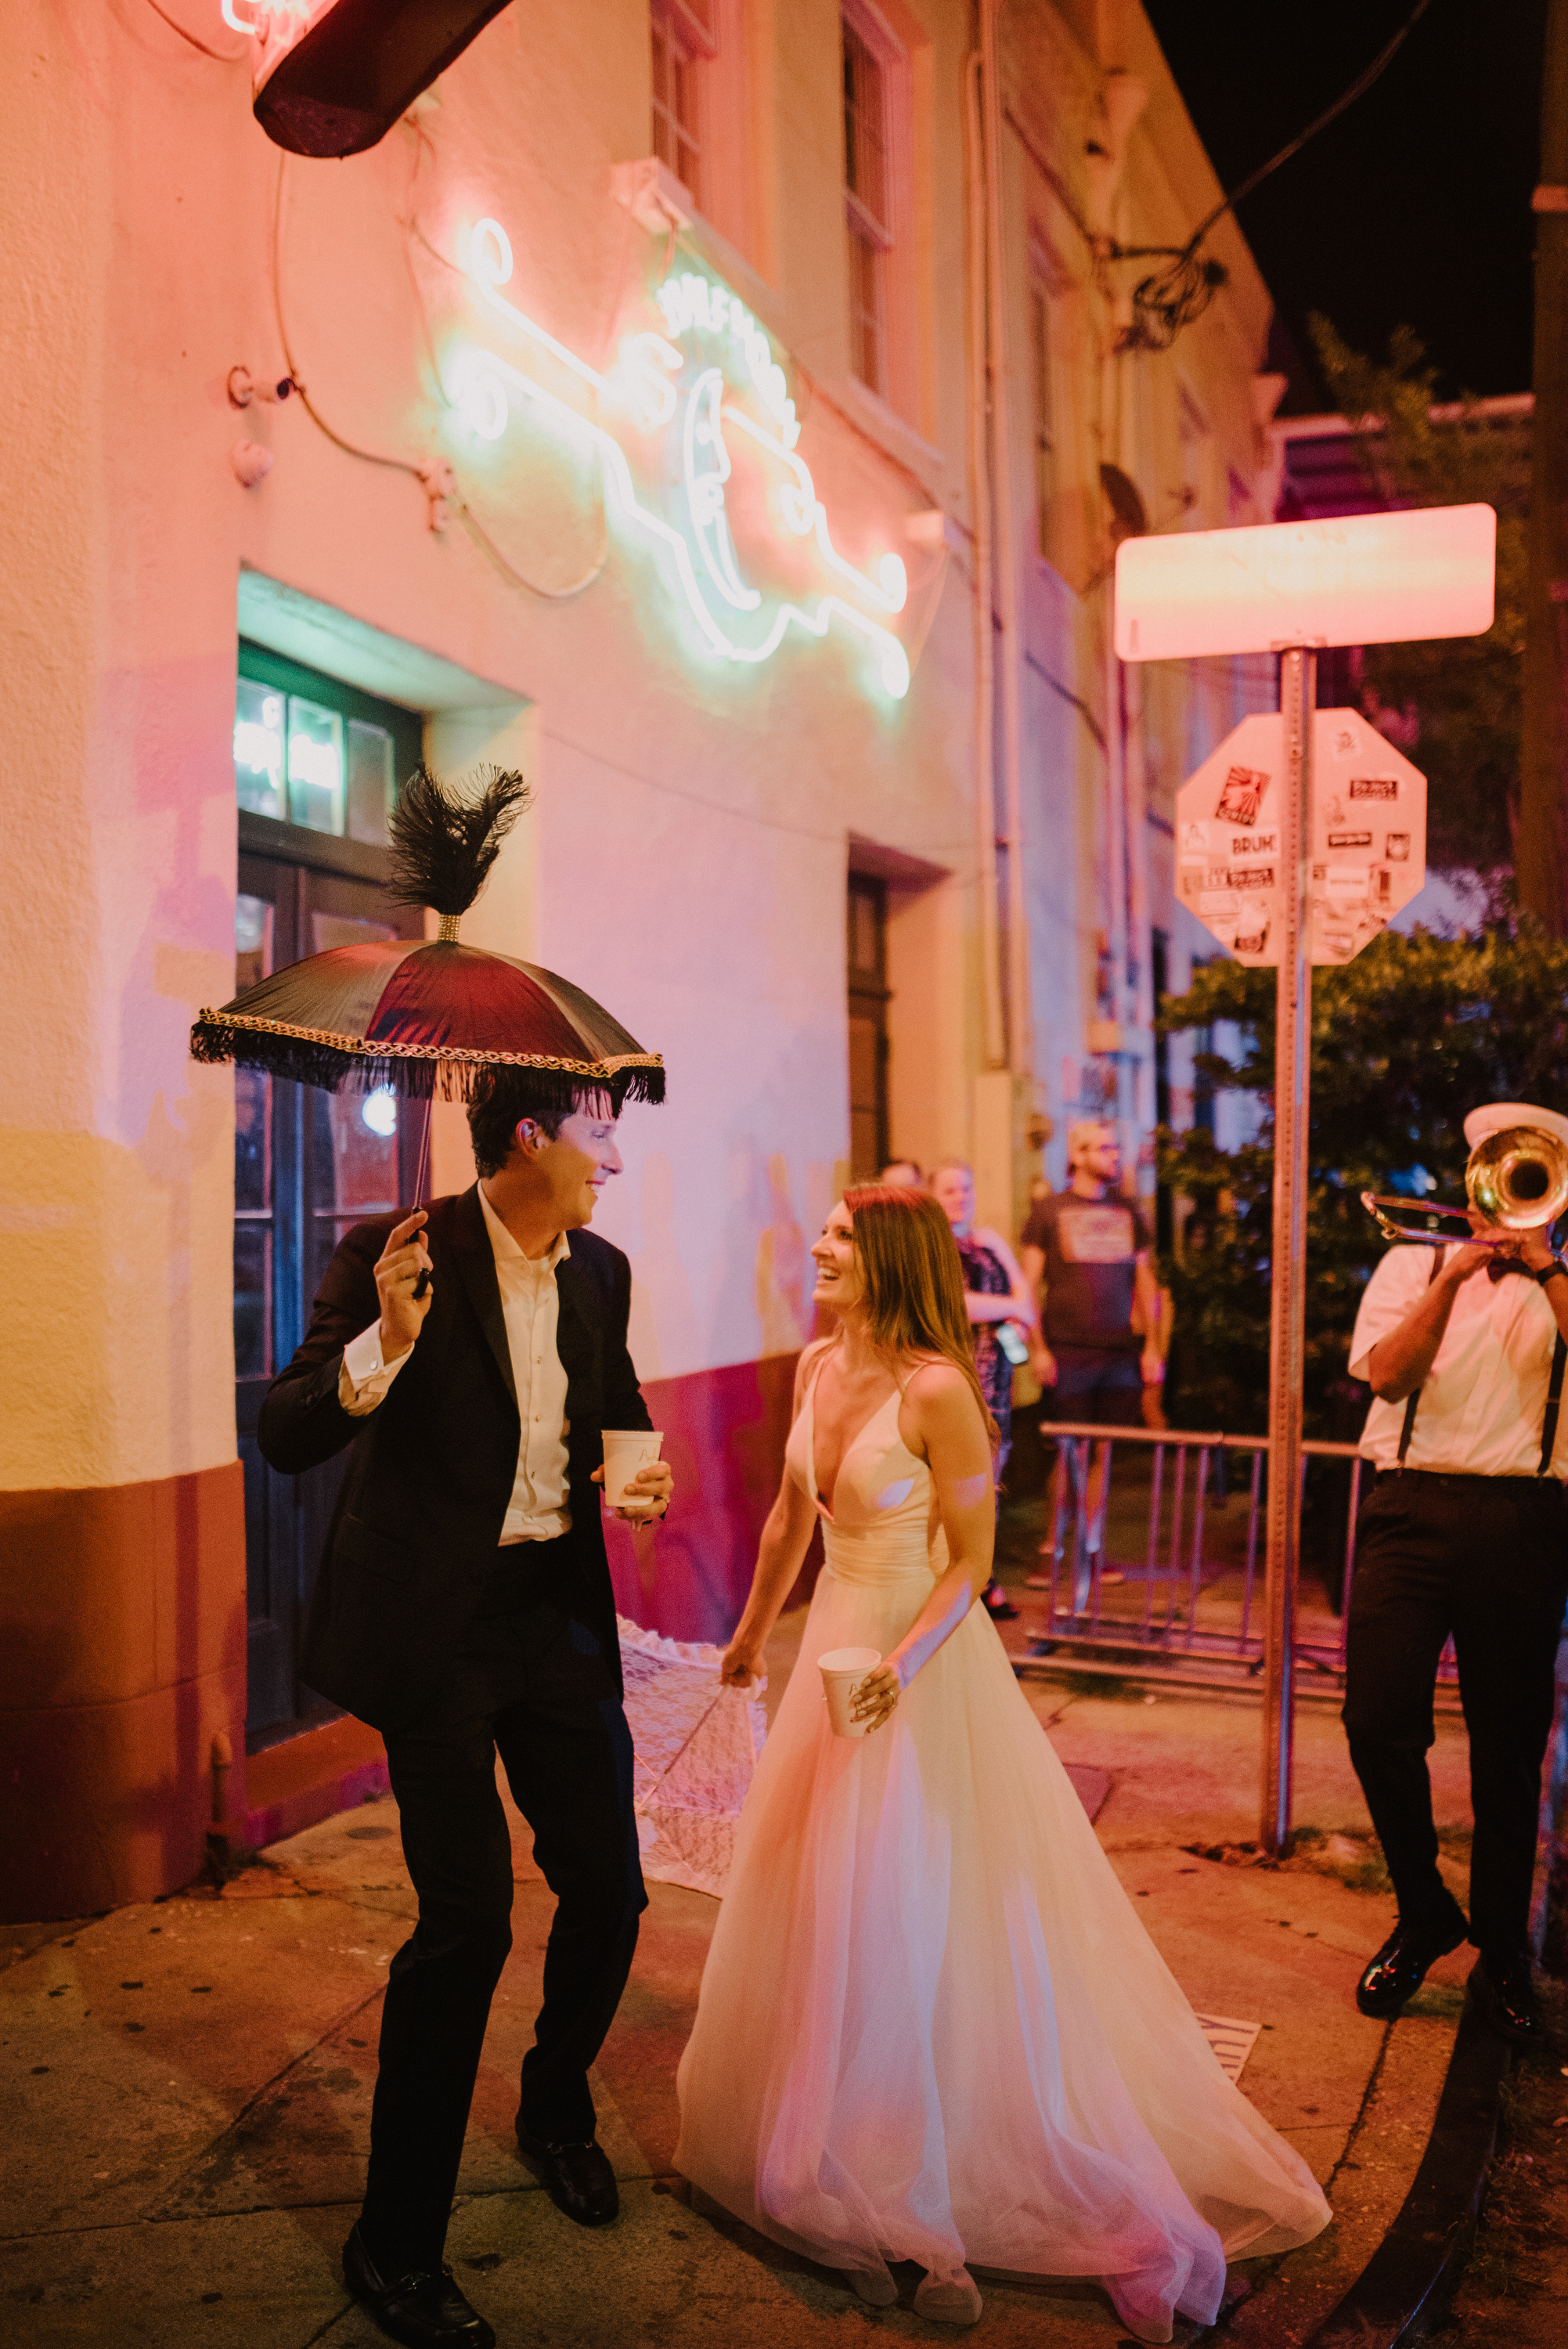 neworleans-wedding-at-il-mercado-by-138themastersinlove.JPG